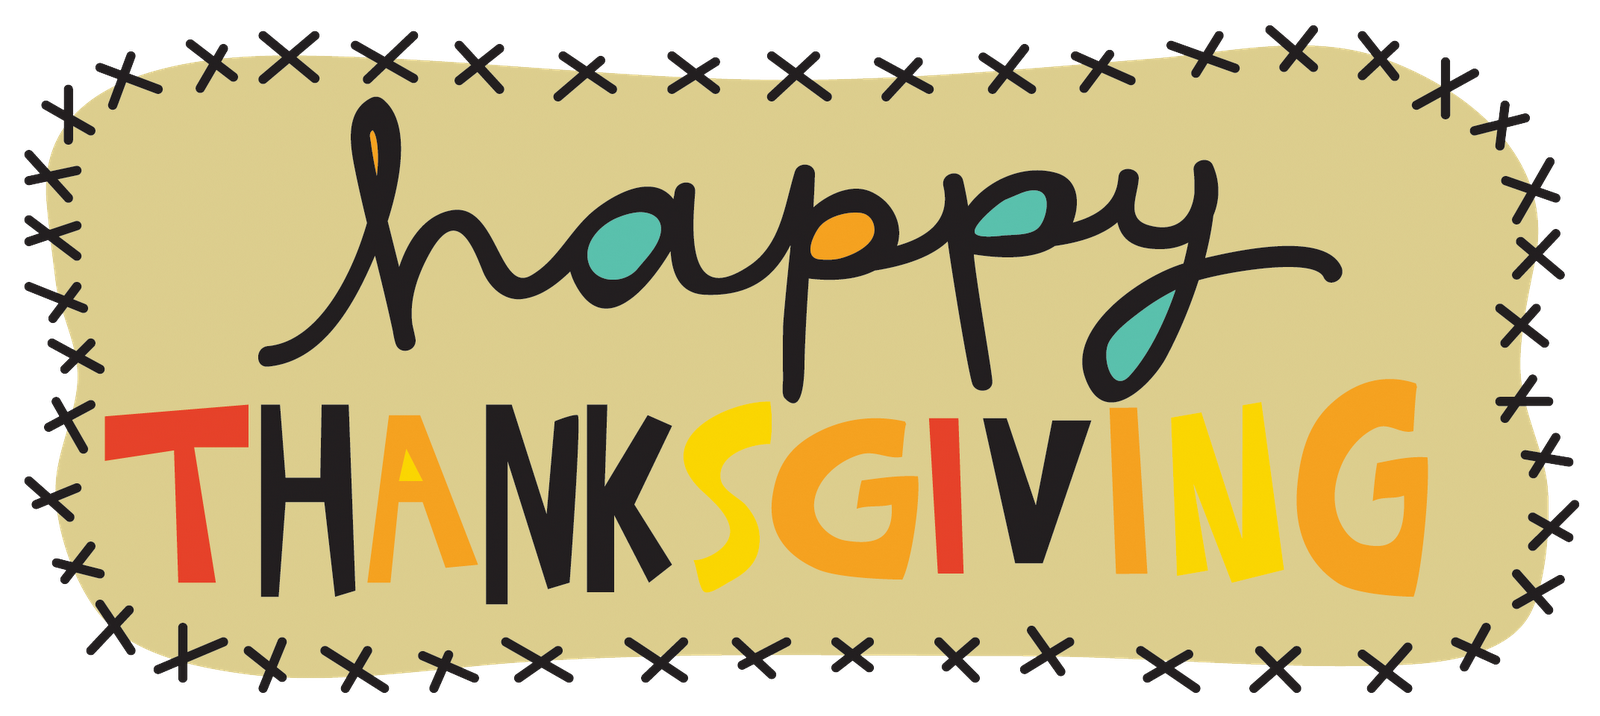 Happy thanksgiving town clipart svg freeuse library 28+ Collection of Blessed Thanksgiving Clipart | High quality, free ... svg freeuse library